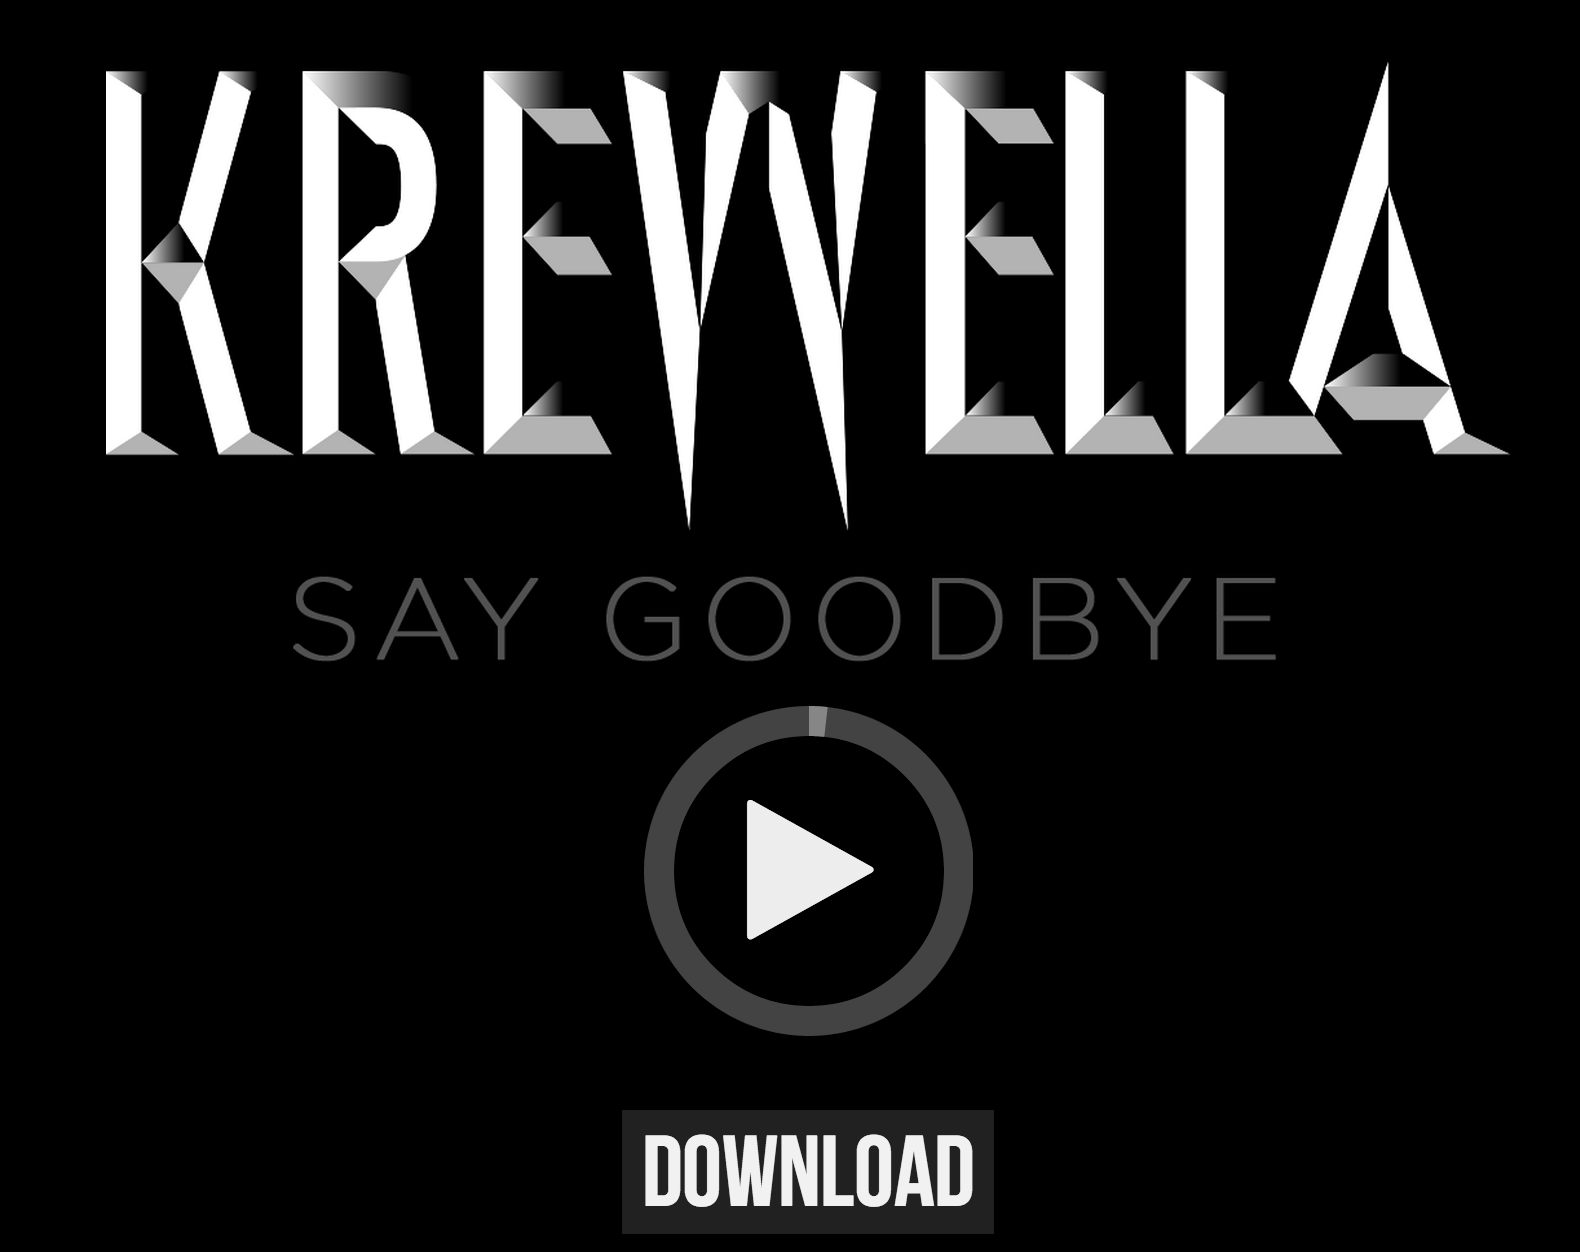 krewella say goodbye song free download